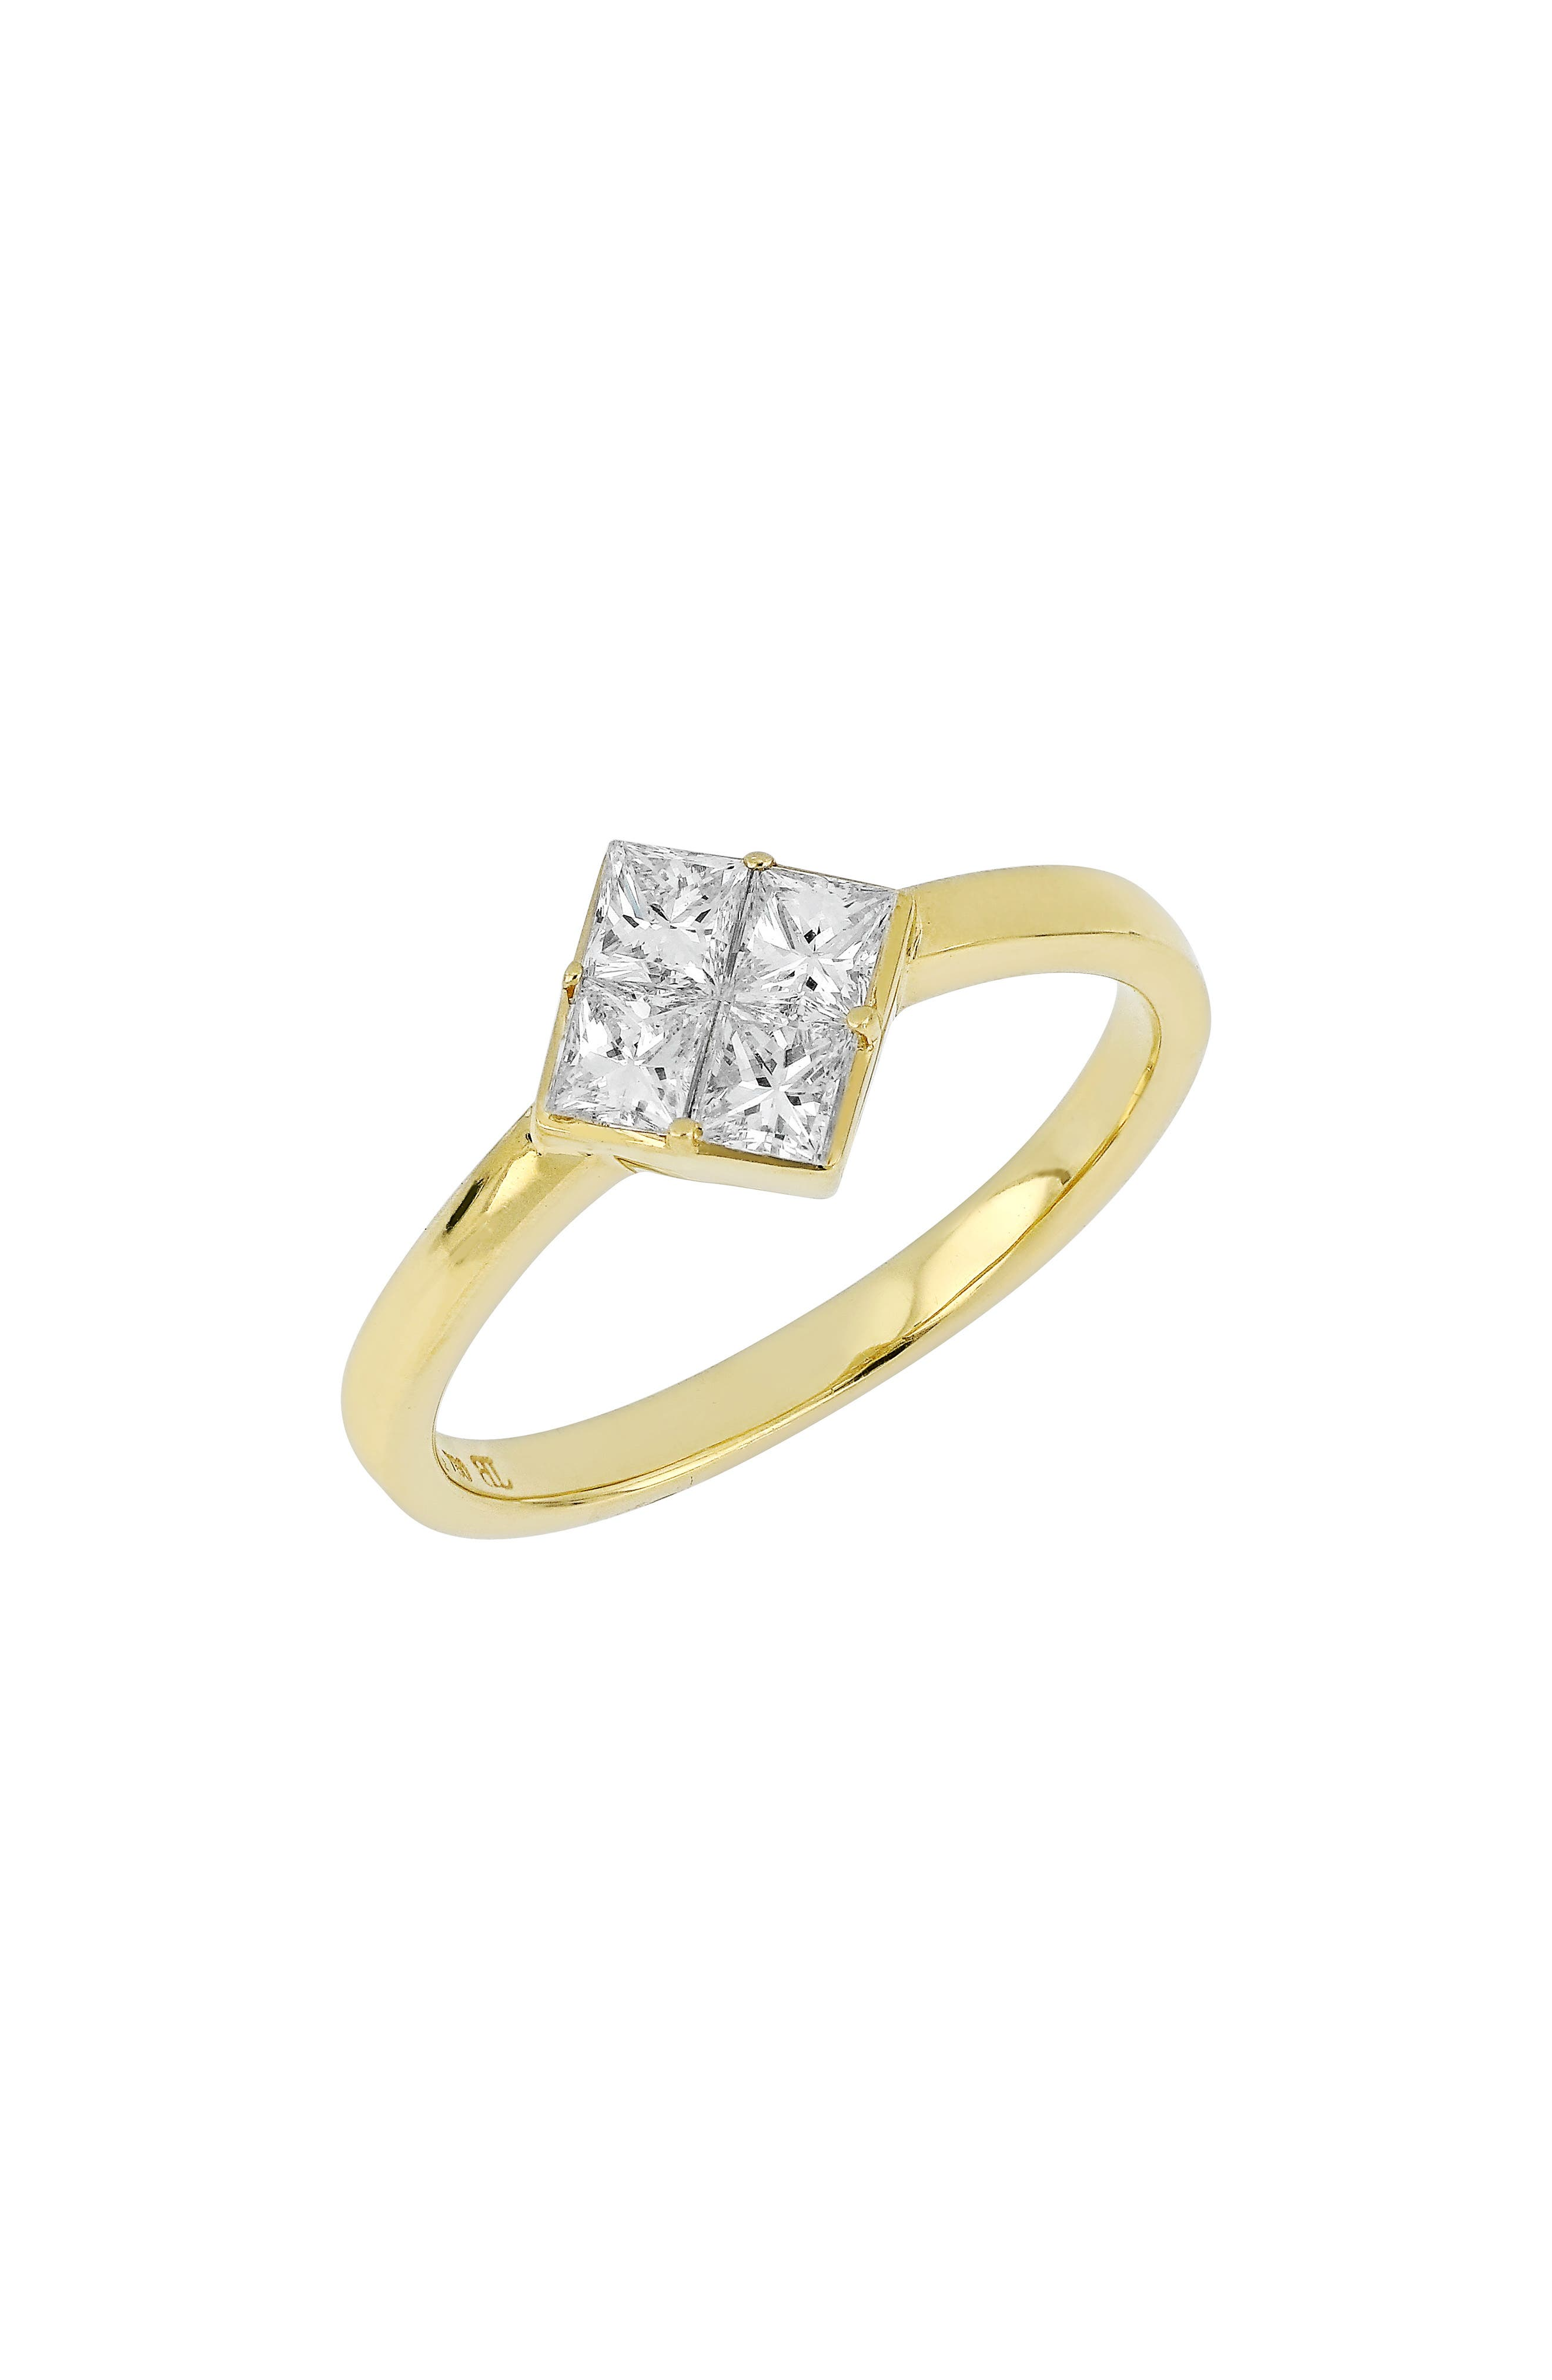 Diamond Cluster Ring,                             Main thumbnail 1, color,                             YELLOW GOLD